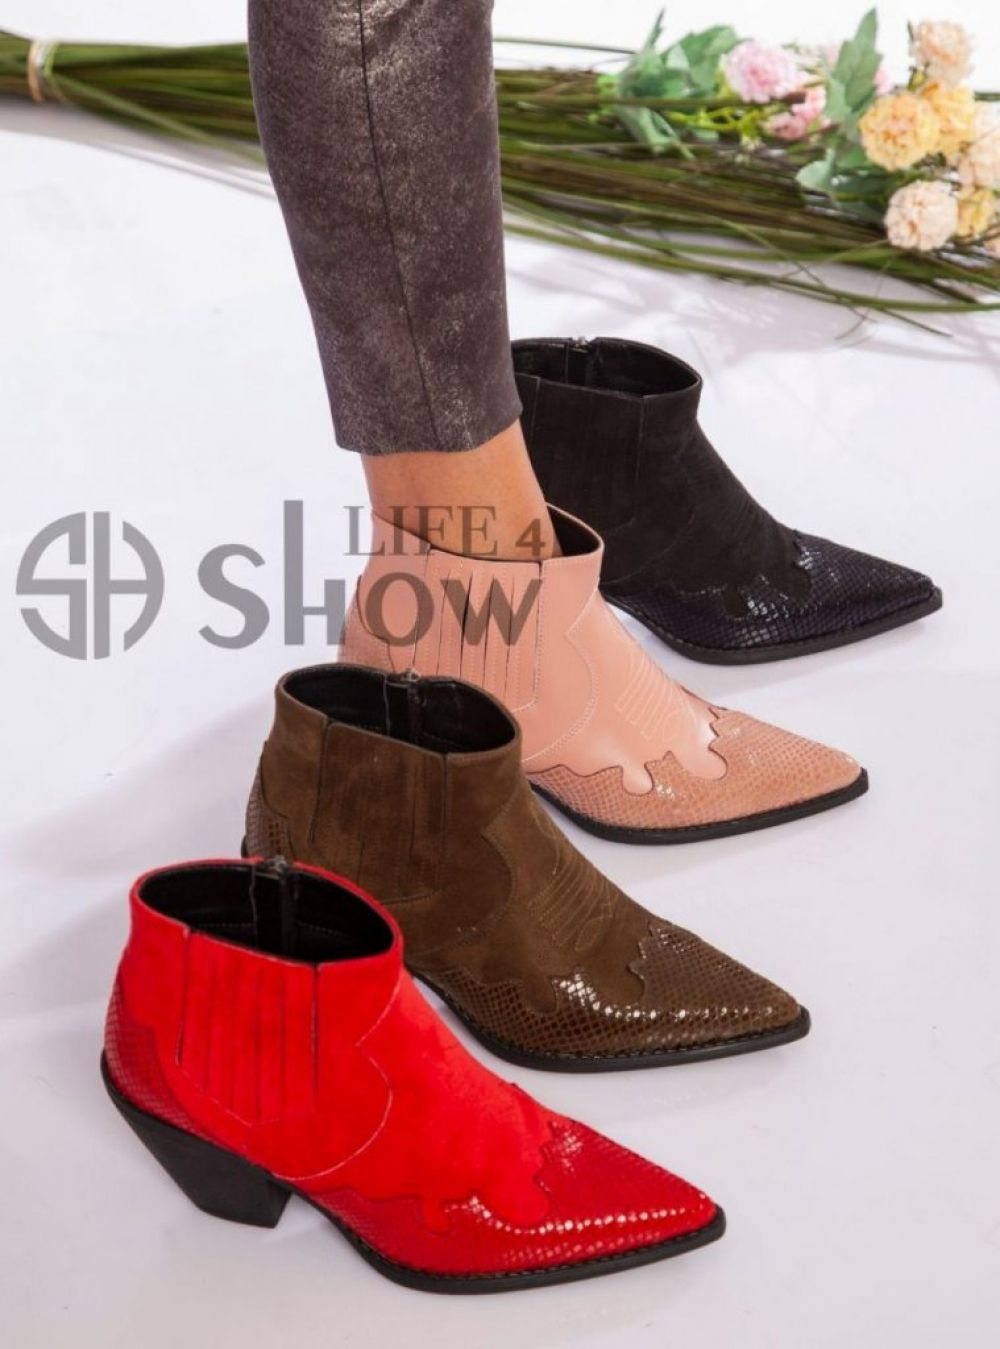 Leather Booties for Women Western Style Pointed Toe ShowLife4 NEW 2021 ✨ Export Orders to the whole world ✨ For Export from Turkey to the whole world Click picture to view details of this product Follow Us and share this on your page #YeniExpo #madeinturkey 🇹🇷🇹🇷🇹🇷 #SupportTurkey